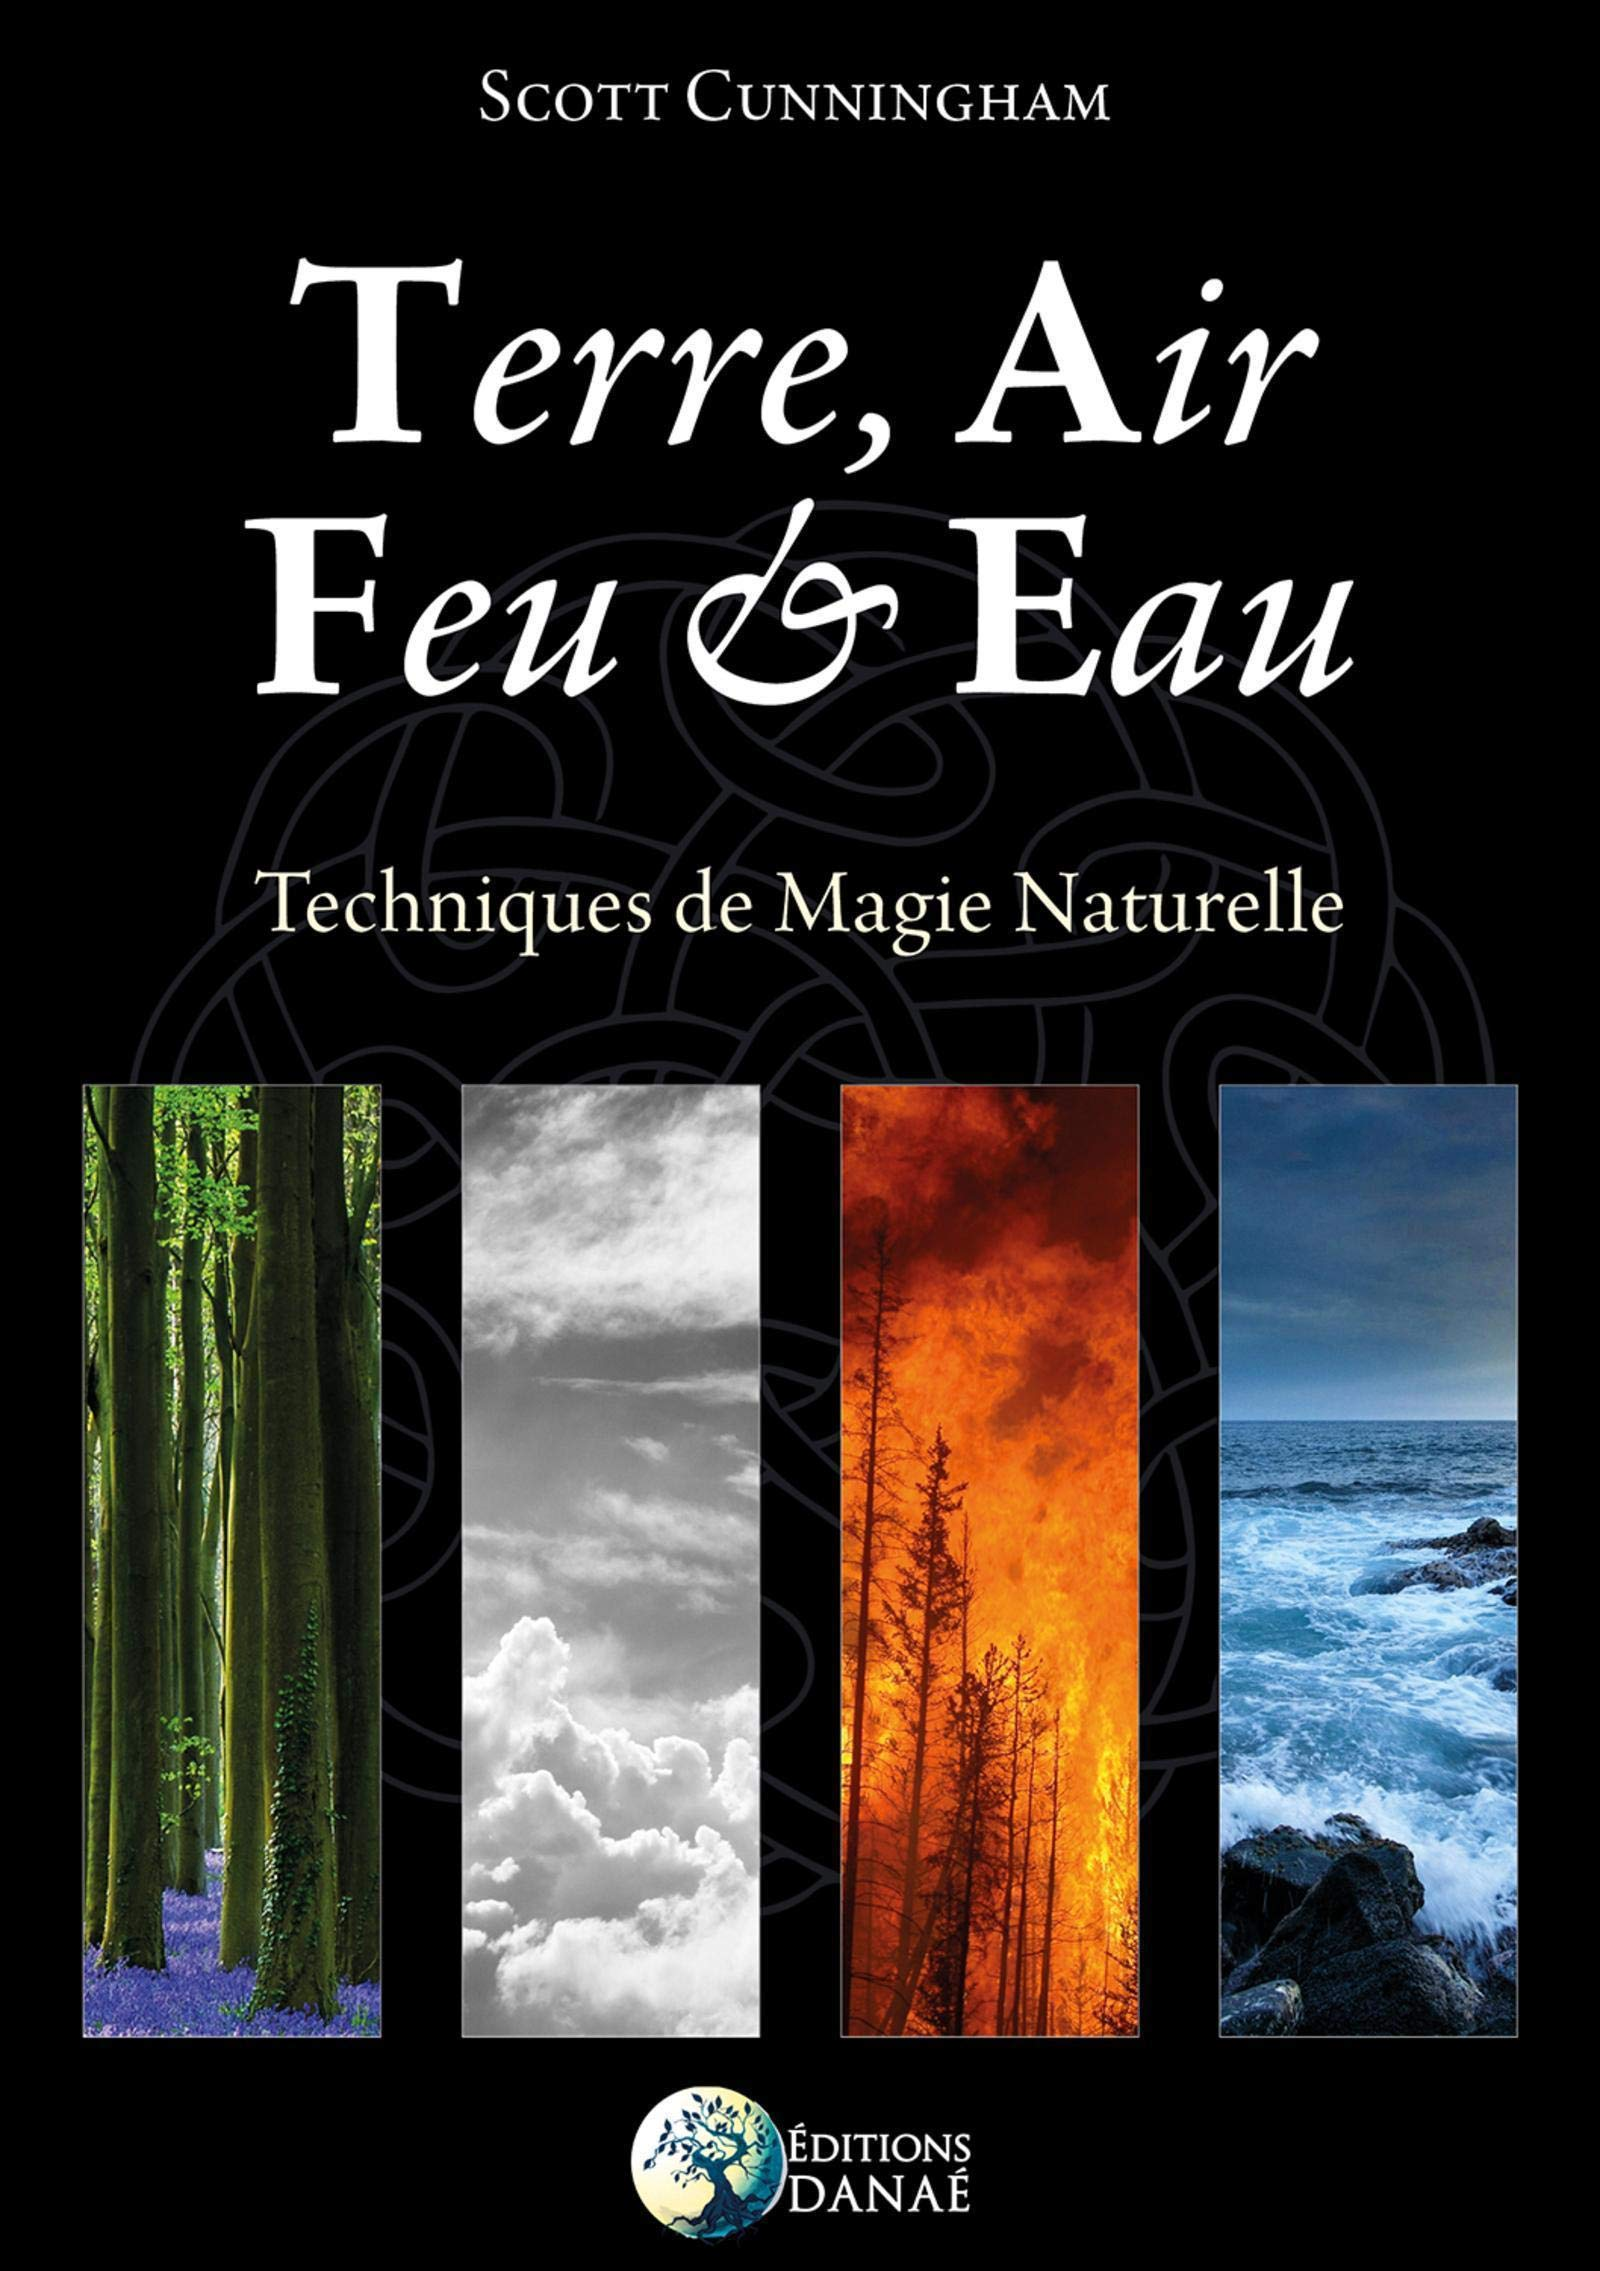 Terre Air Feu Et Eau Techniques De Magie Naturelle Danae French Edition Cunningham Scott 9791094876152 Amazon Com Books